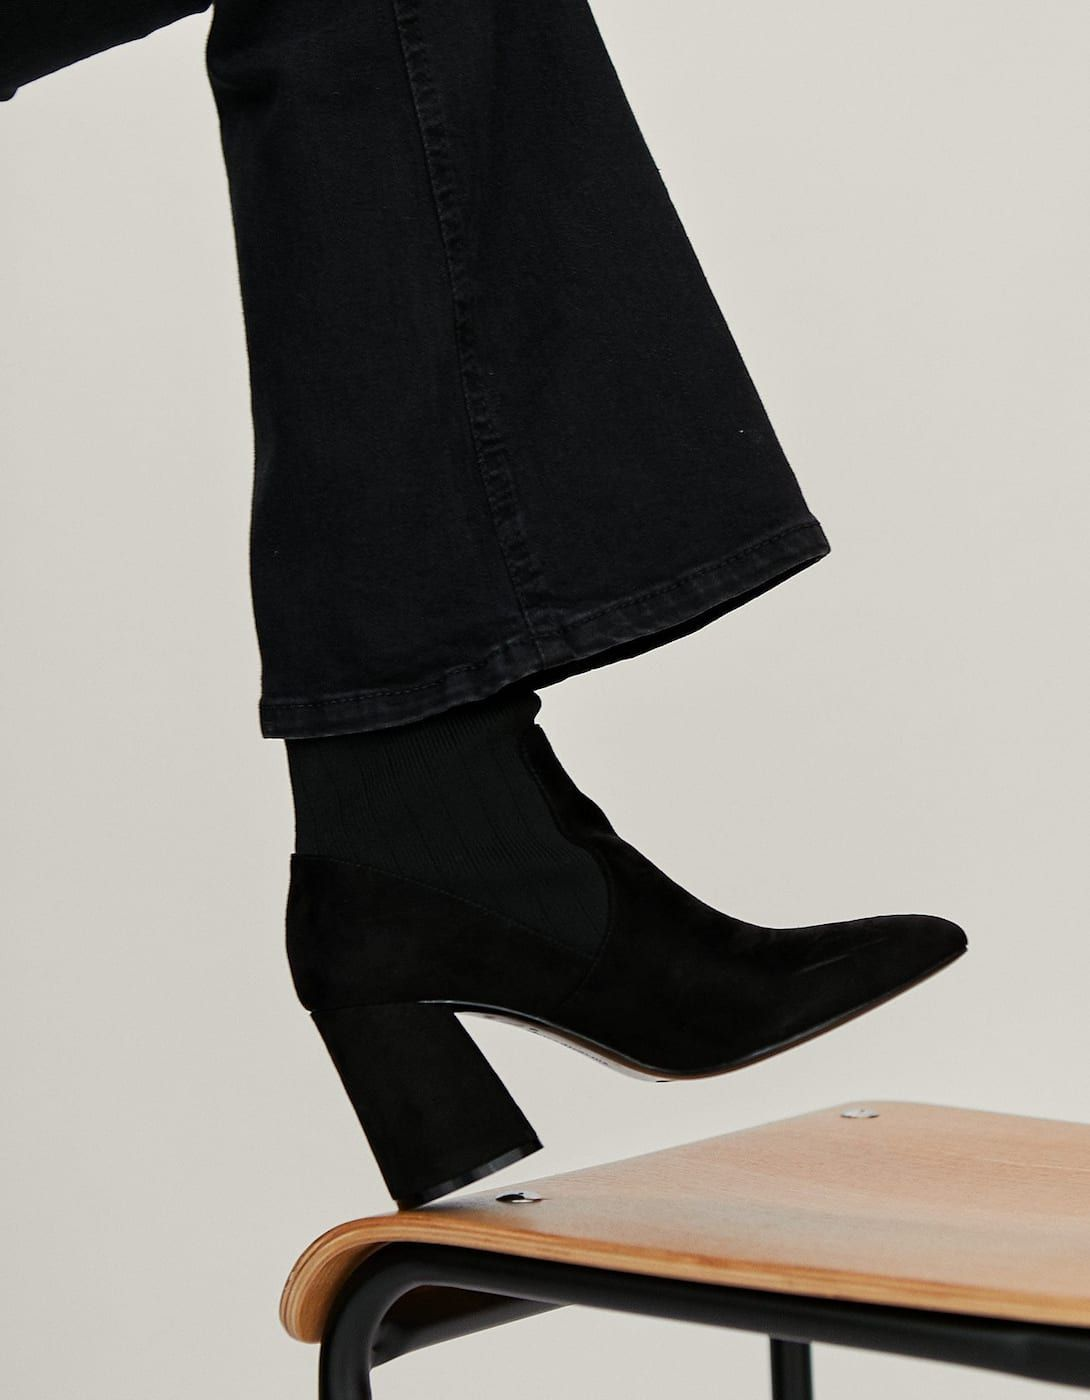 e962a962b604 Heeled ankle boots with contrasting sock detail - Just in ...